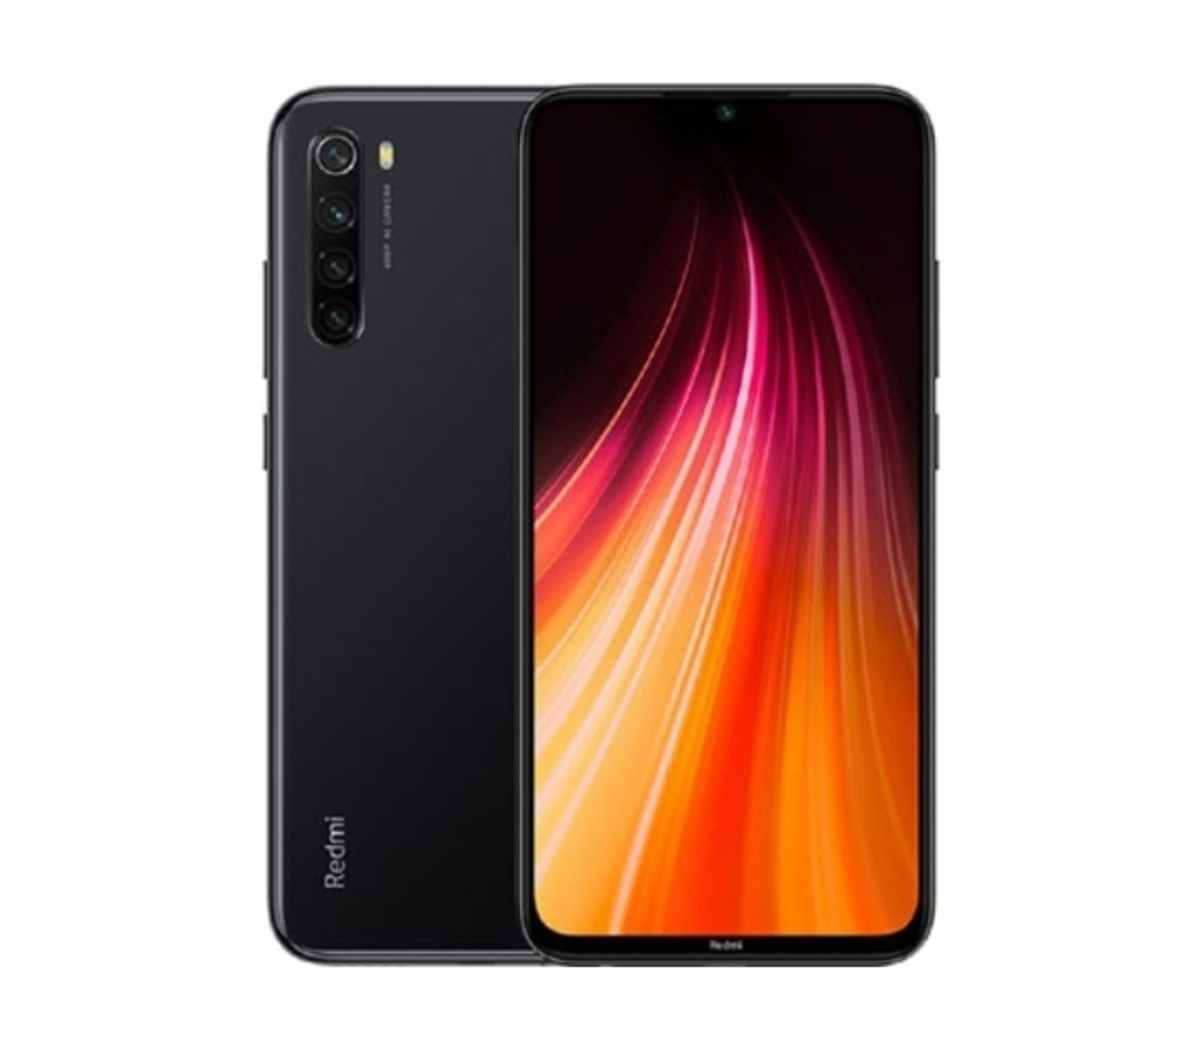 Xiaomi Redmi Note 8T price in Nigeria, Xiaomi Redmi Note 8t, redmi note 8t price in Nigeria, xiaomi redmi note 8t specs, xiaomi redmi note 8t price, redmi note 8t review, Xiaomi redmi note 8t specification, redmi note 8t in Nigeria, Xiaomi Redmi Note 8T image, price and specs in Nigeria, Redmi Note 8t specs and price